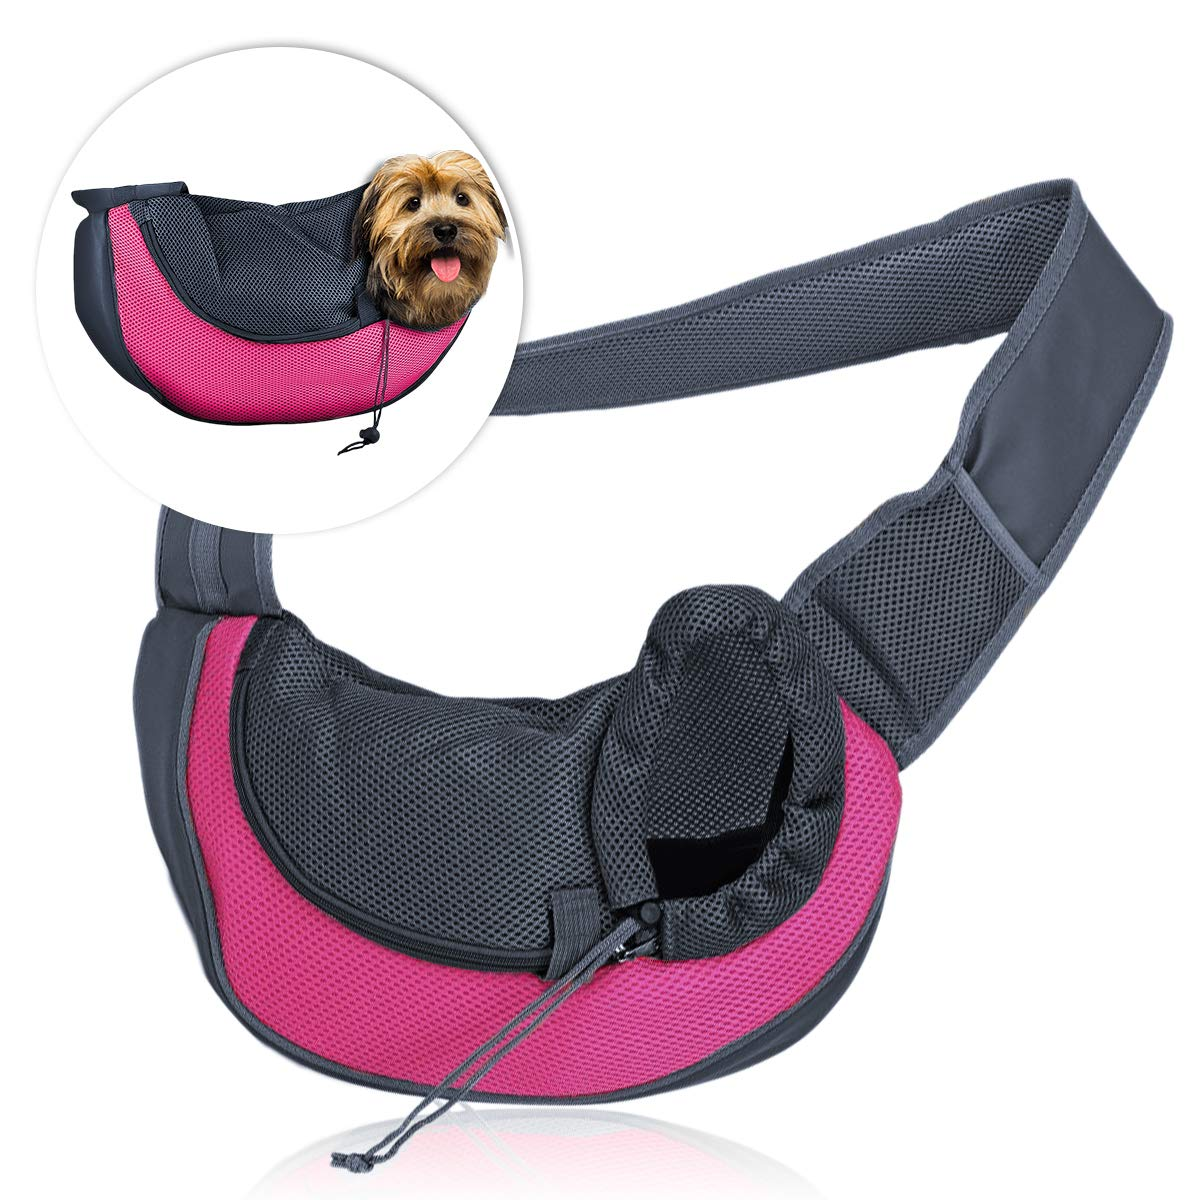 Zone Tech Pet Sling Bag Carrier - Premium Quality Adjustable Breathable Safe Stylish Travelling Pet Hands-Free Sling Bag Perfect for Small Dogs and Cats by Zone Tech